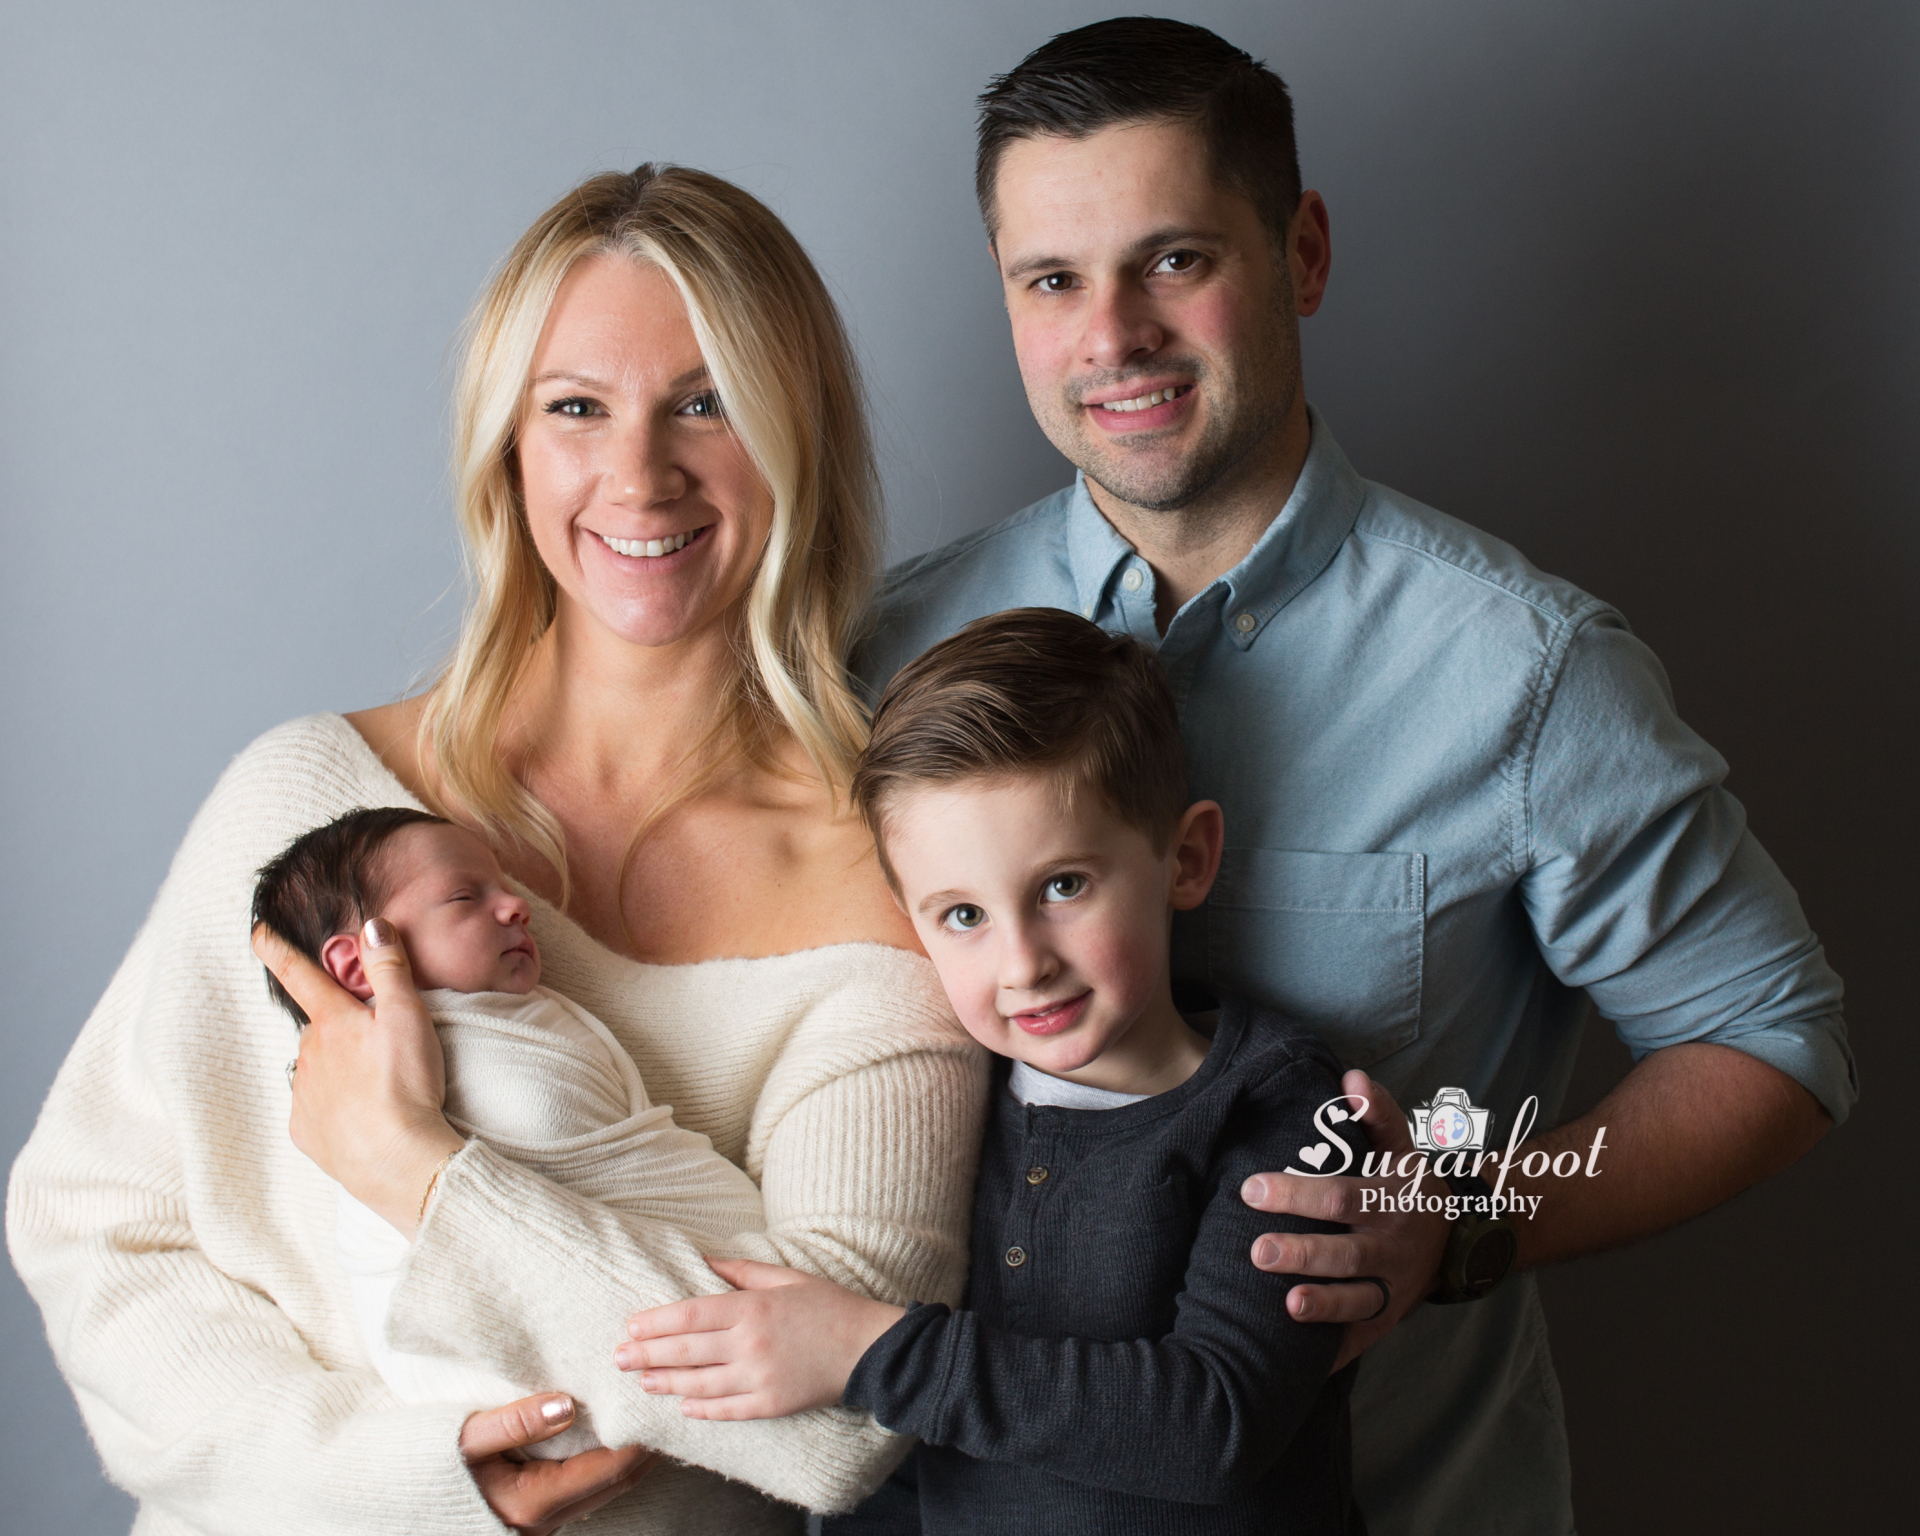 st louis maternity photographer newborn photographer